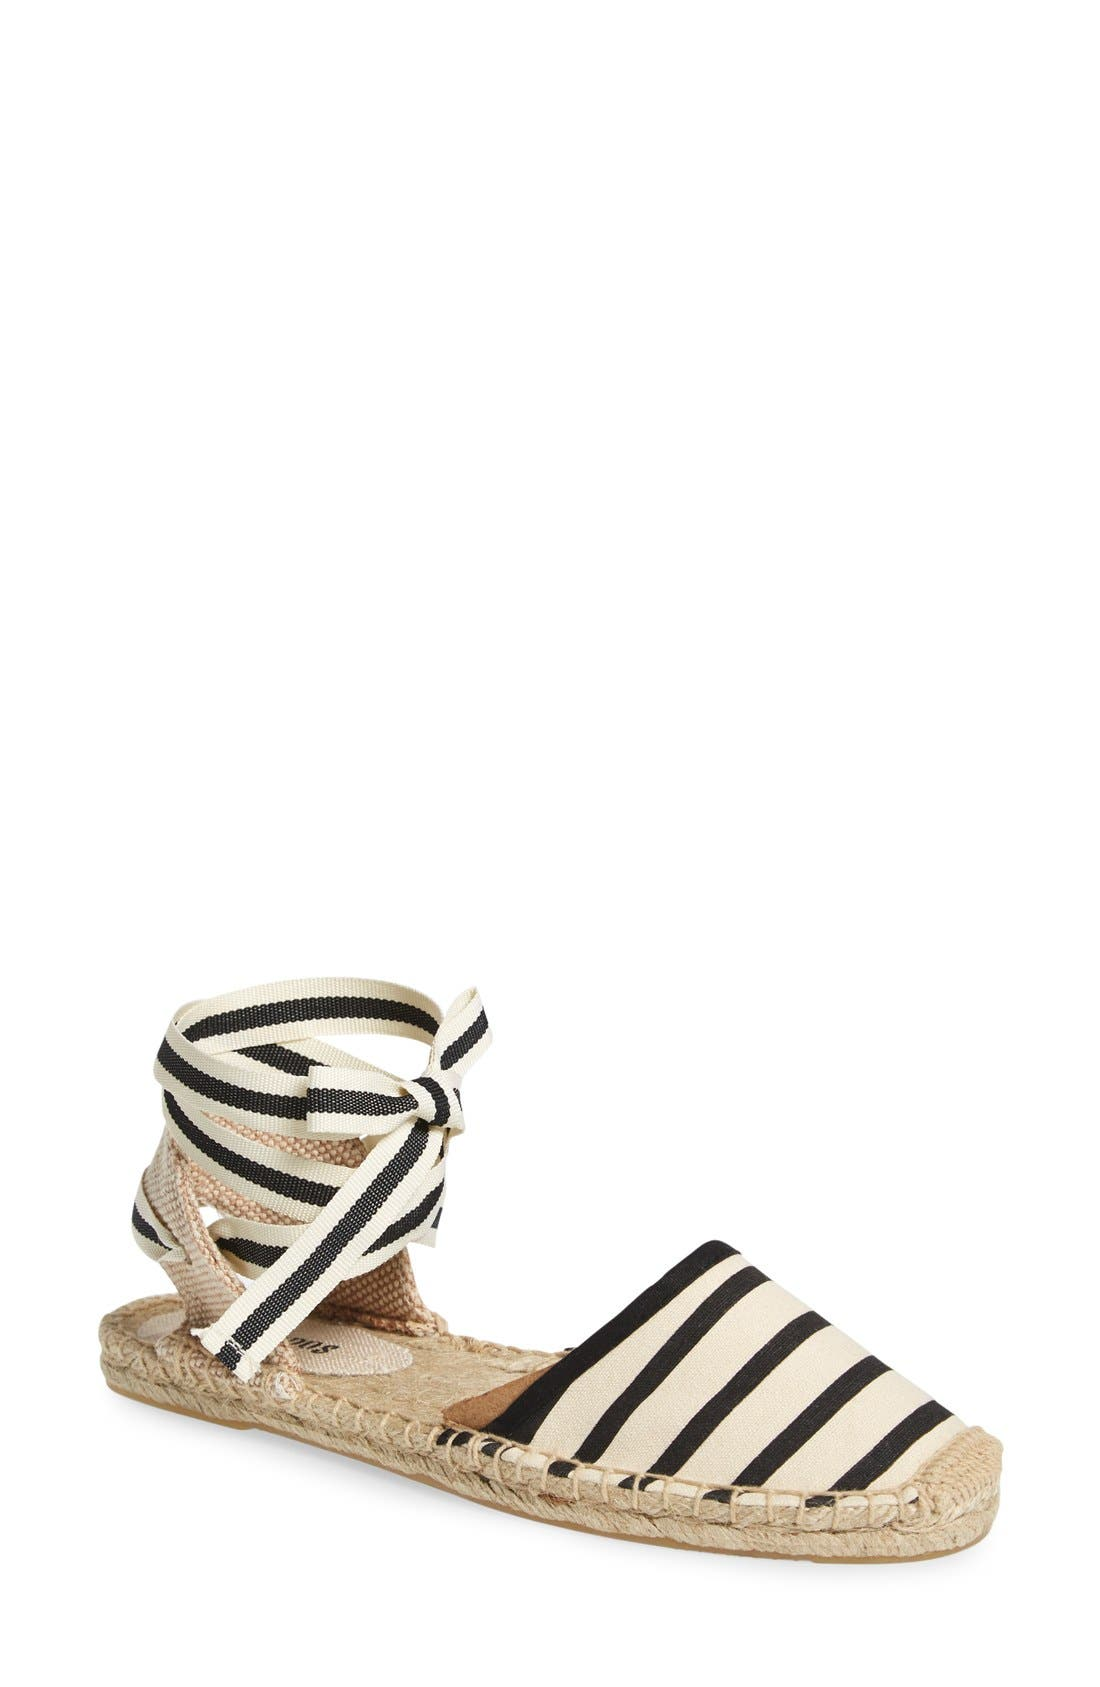 Alternate Image 1 Selected - Soludos Lace-Up Espadrille Sandal (Women)